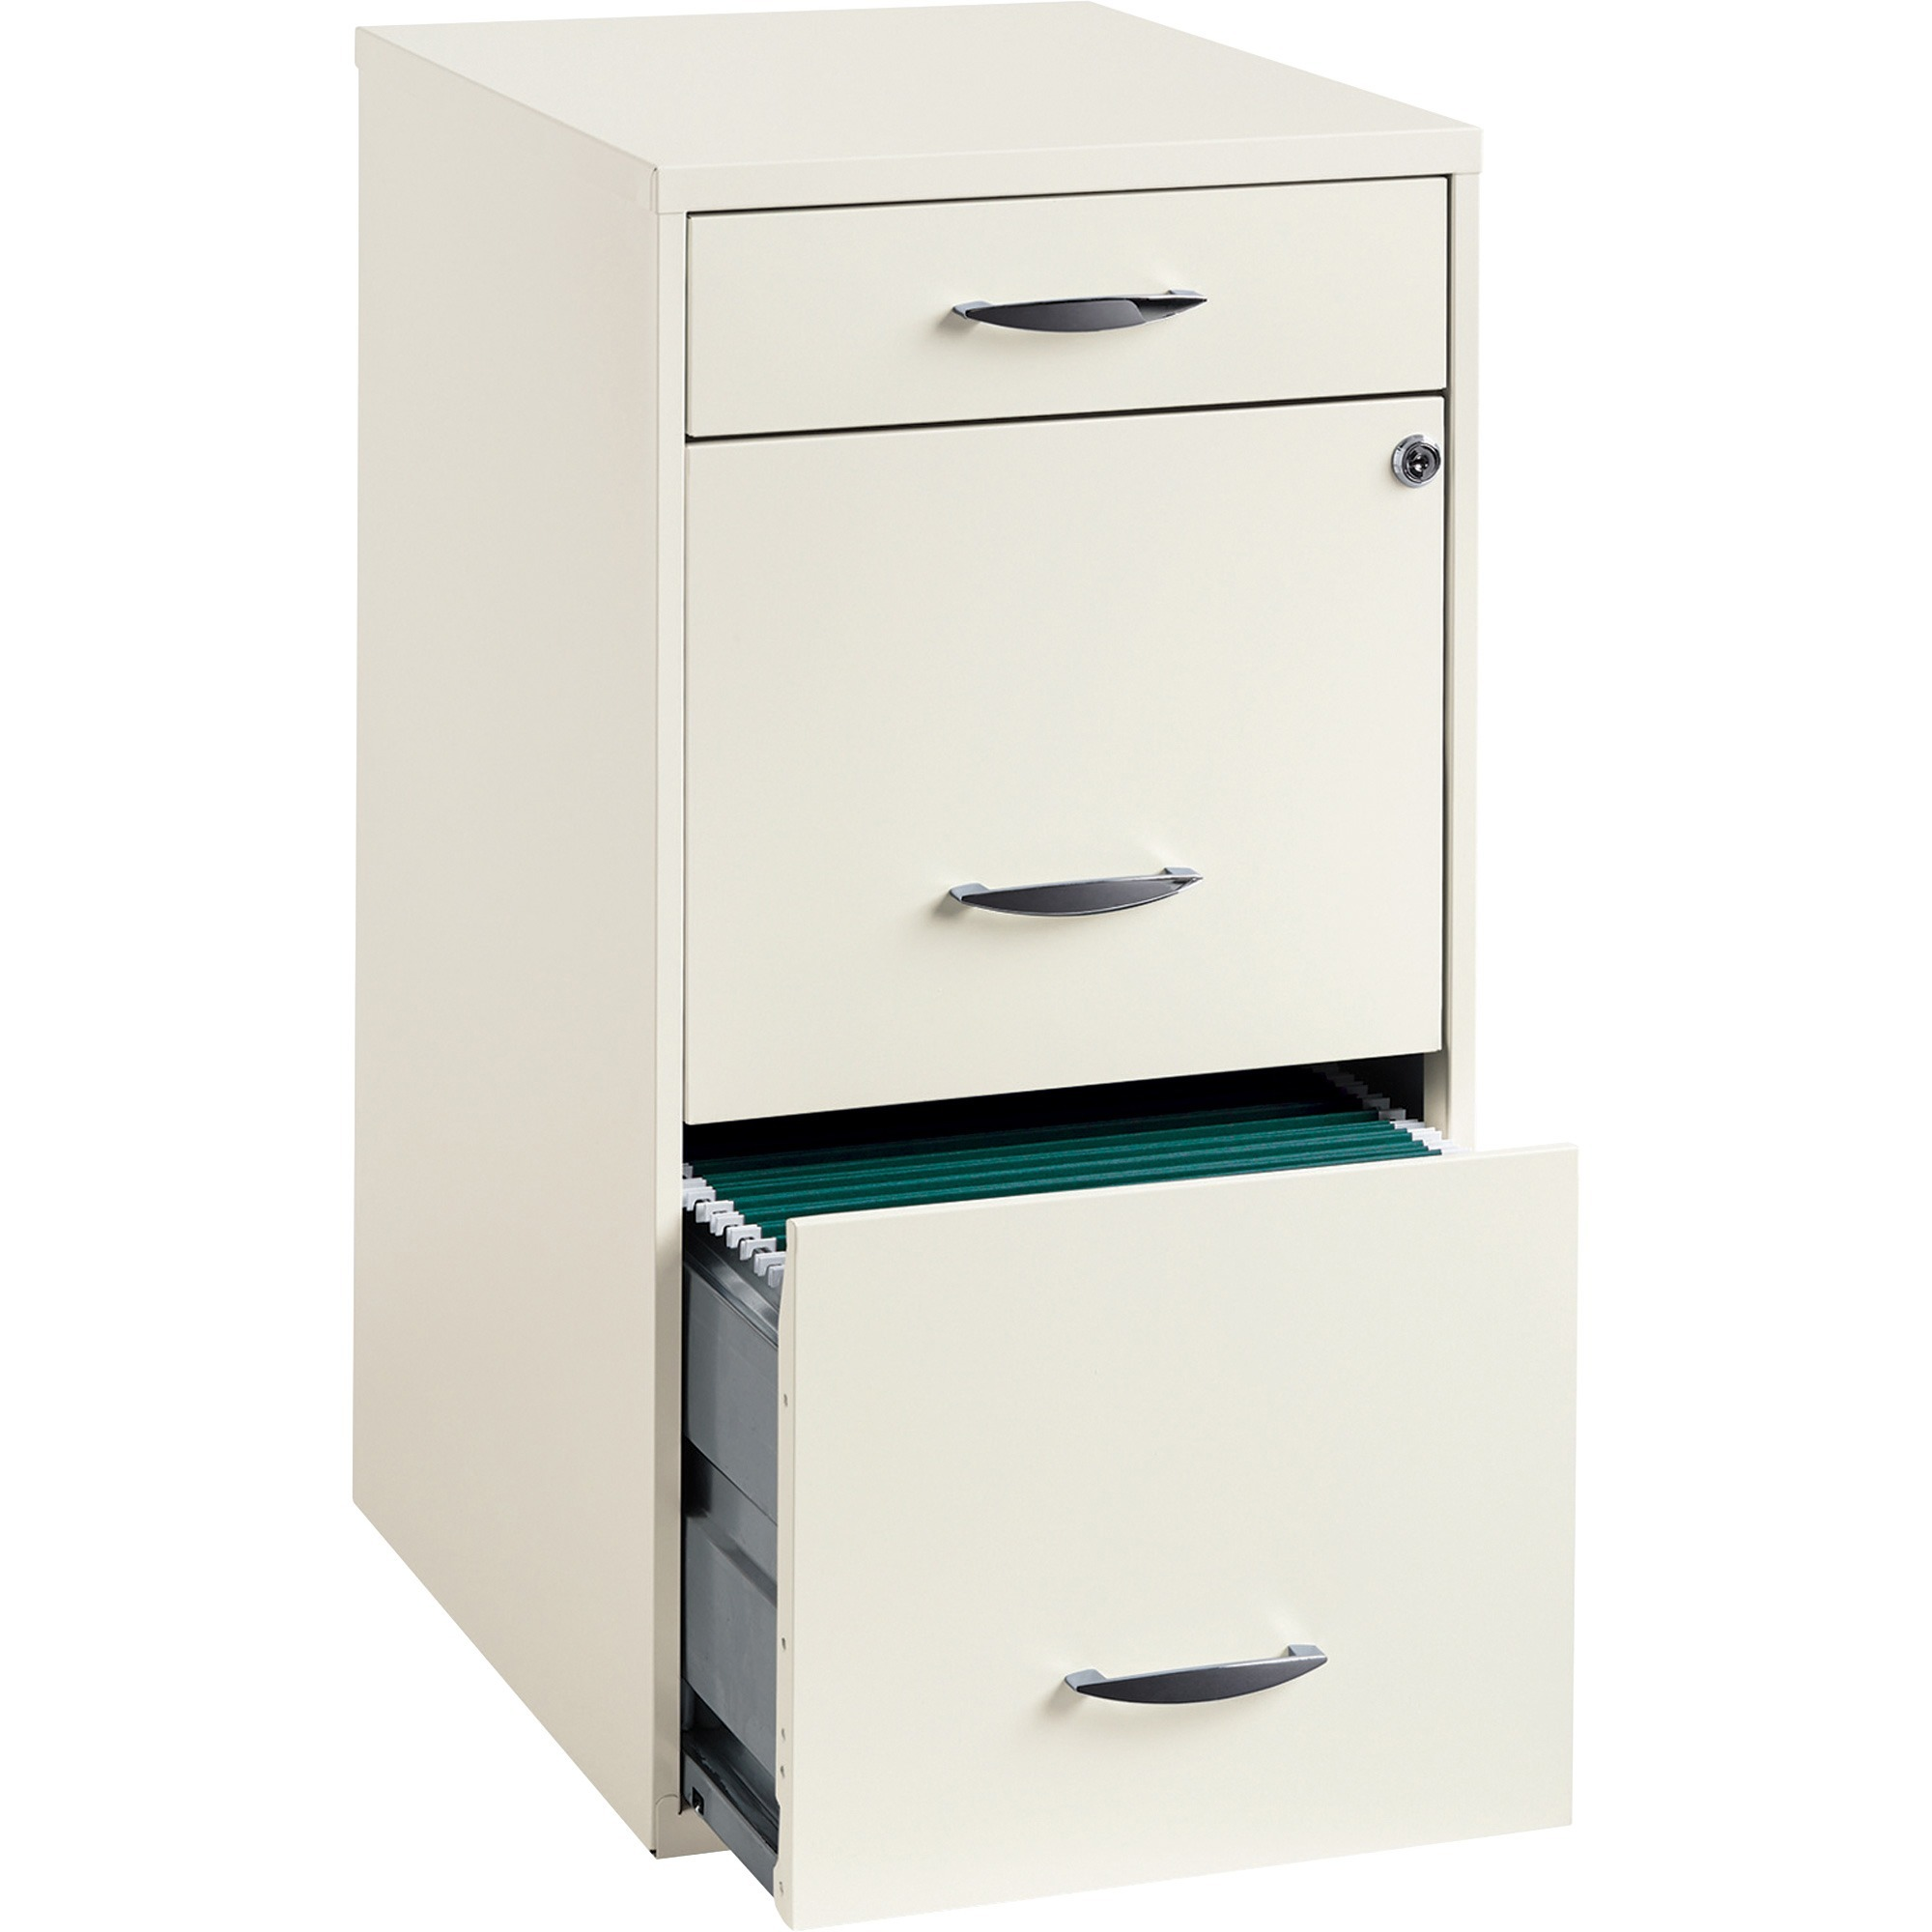 Lorell soho white 3 drawer file cabinet 14 3 x 18 x 27 3 x drawers for file accessories letter casters locking drawer glide suspension